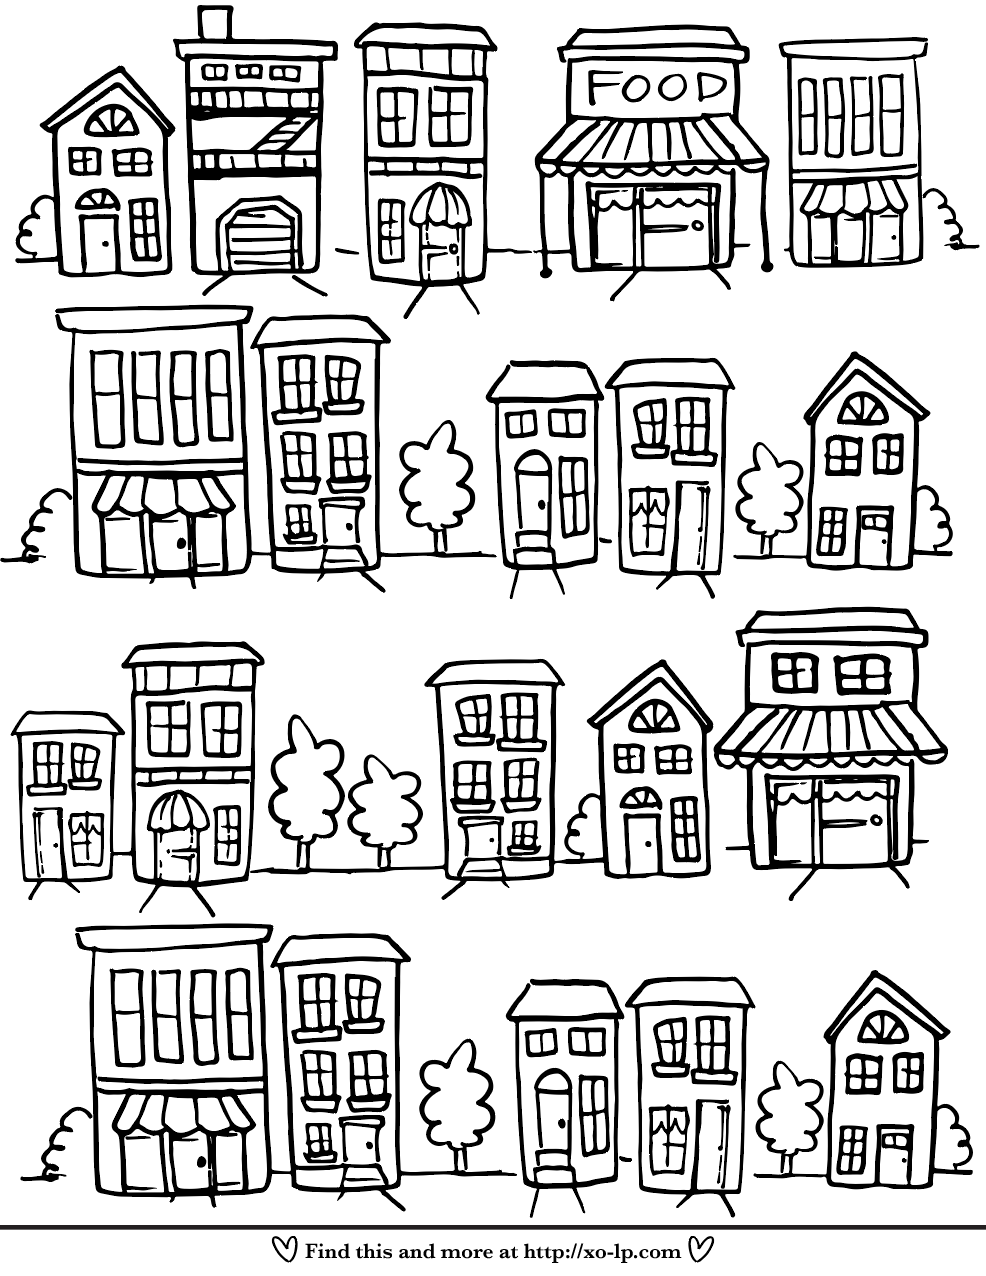 Neighborhood Printable Coloring Page Xo Lp Summer Coloring Sheets Printable Coloring Pages House Colouring Pages